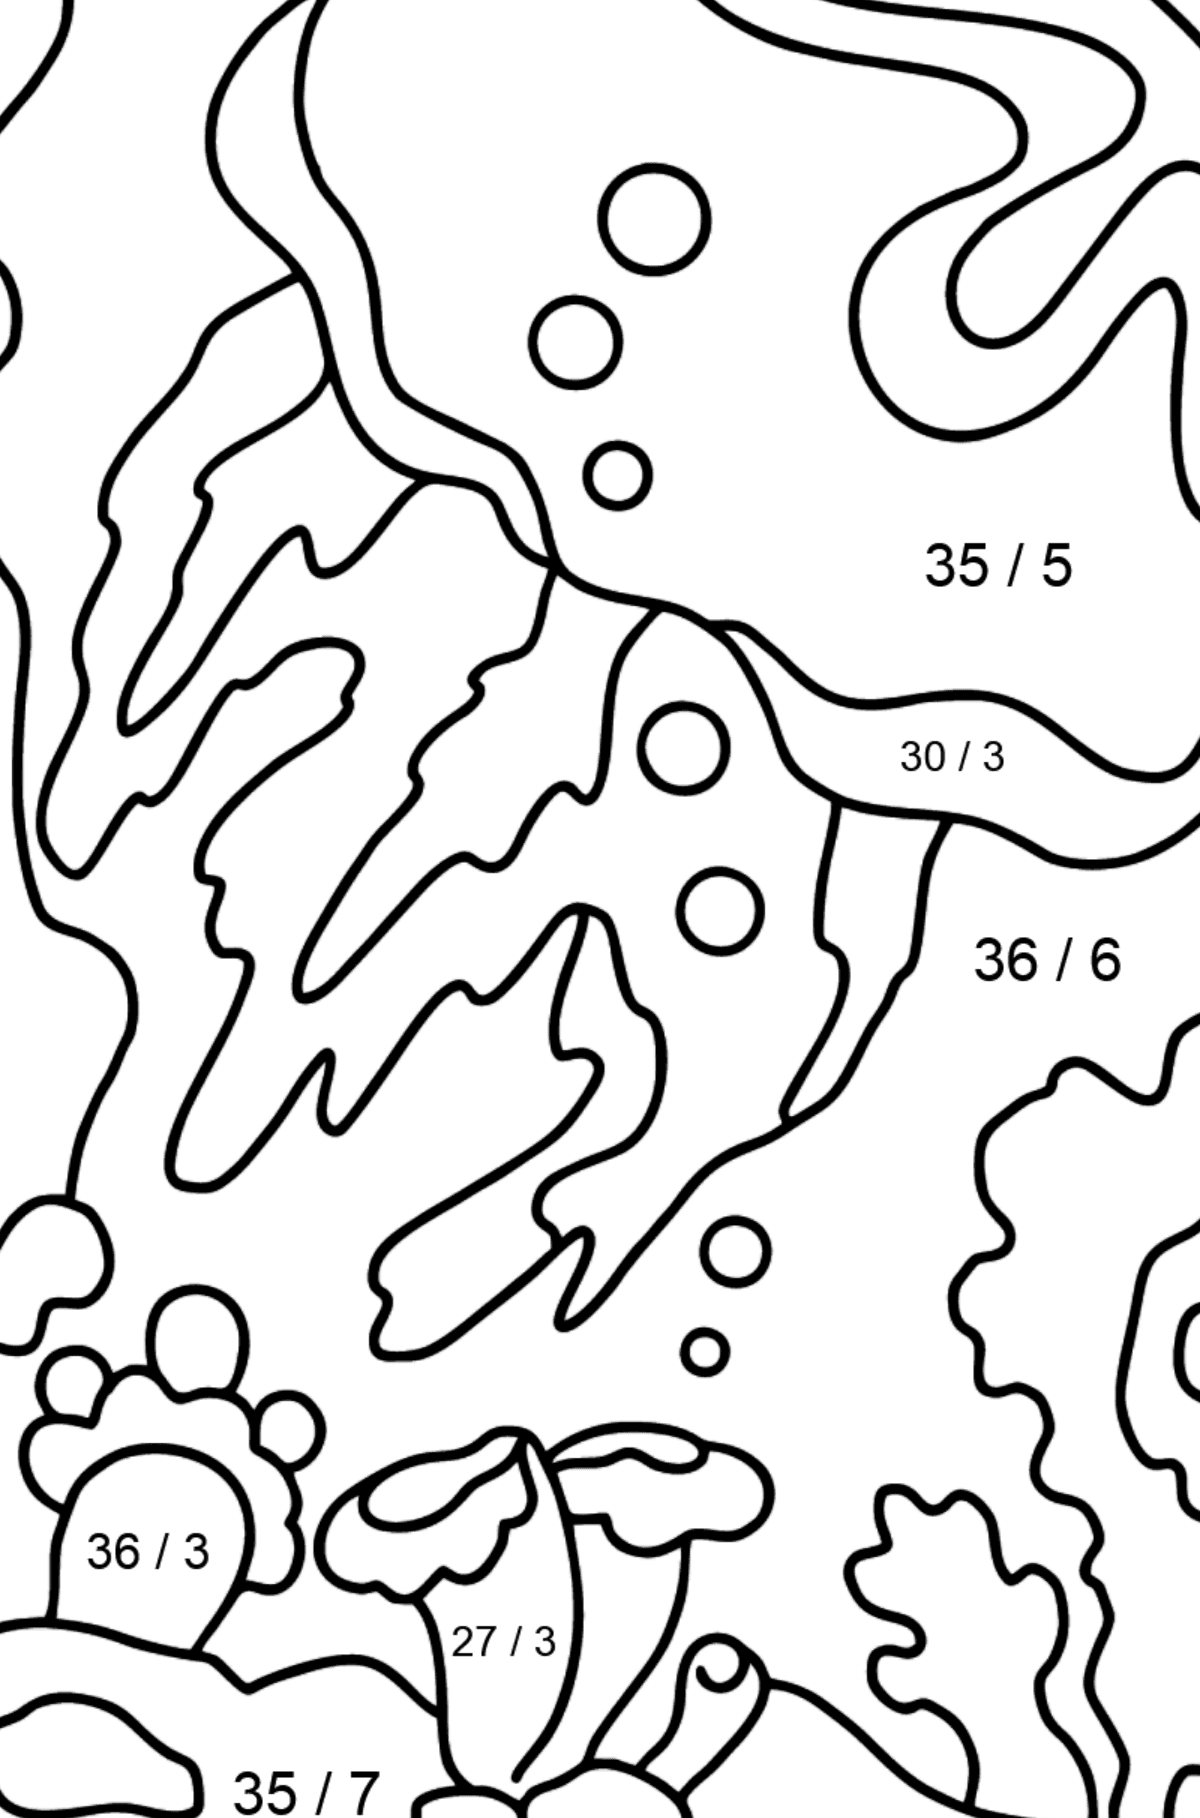 A Seethrough Jellyfish Coloring Page - Math Coloring - Division for Kids